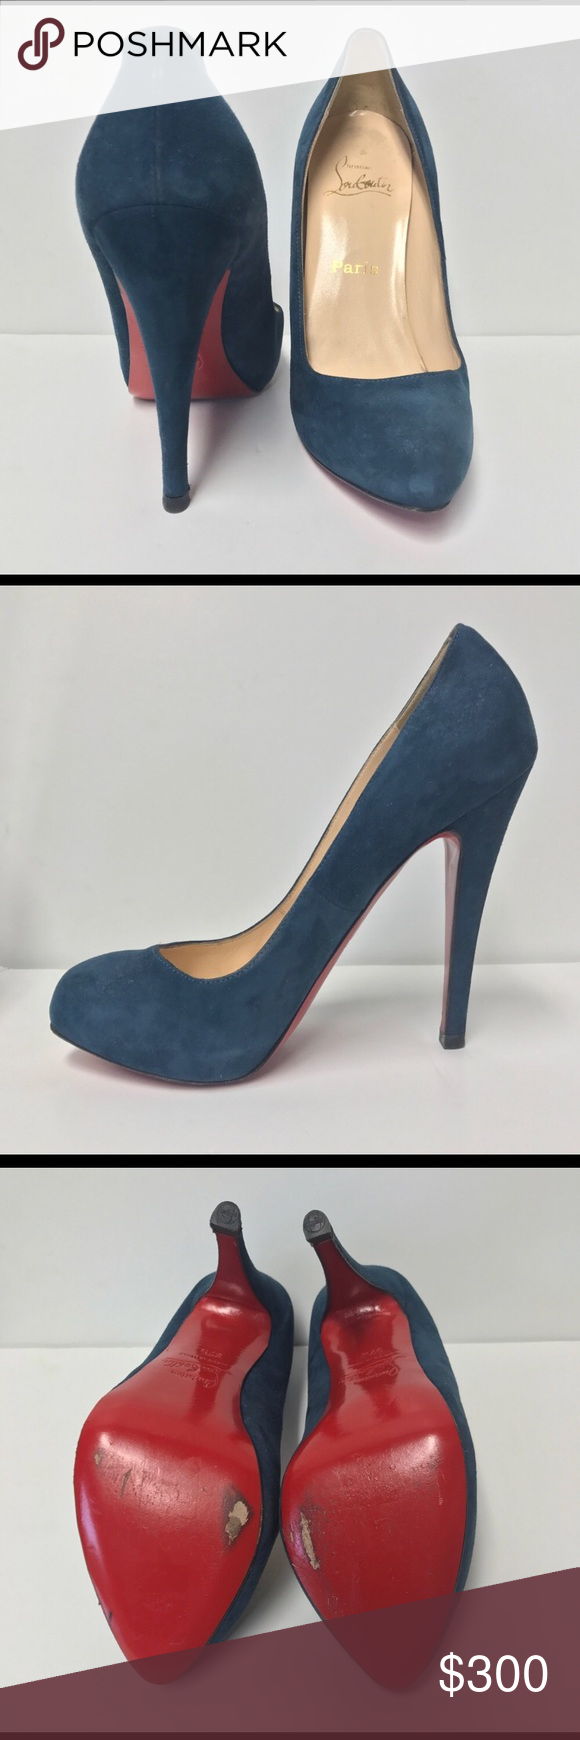 16fe224375f Christian Louboutin pumps Blue suede Christian Louboutins. Posh purchase  but they are a little too